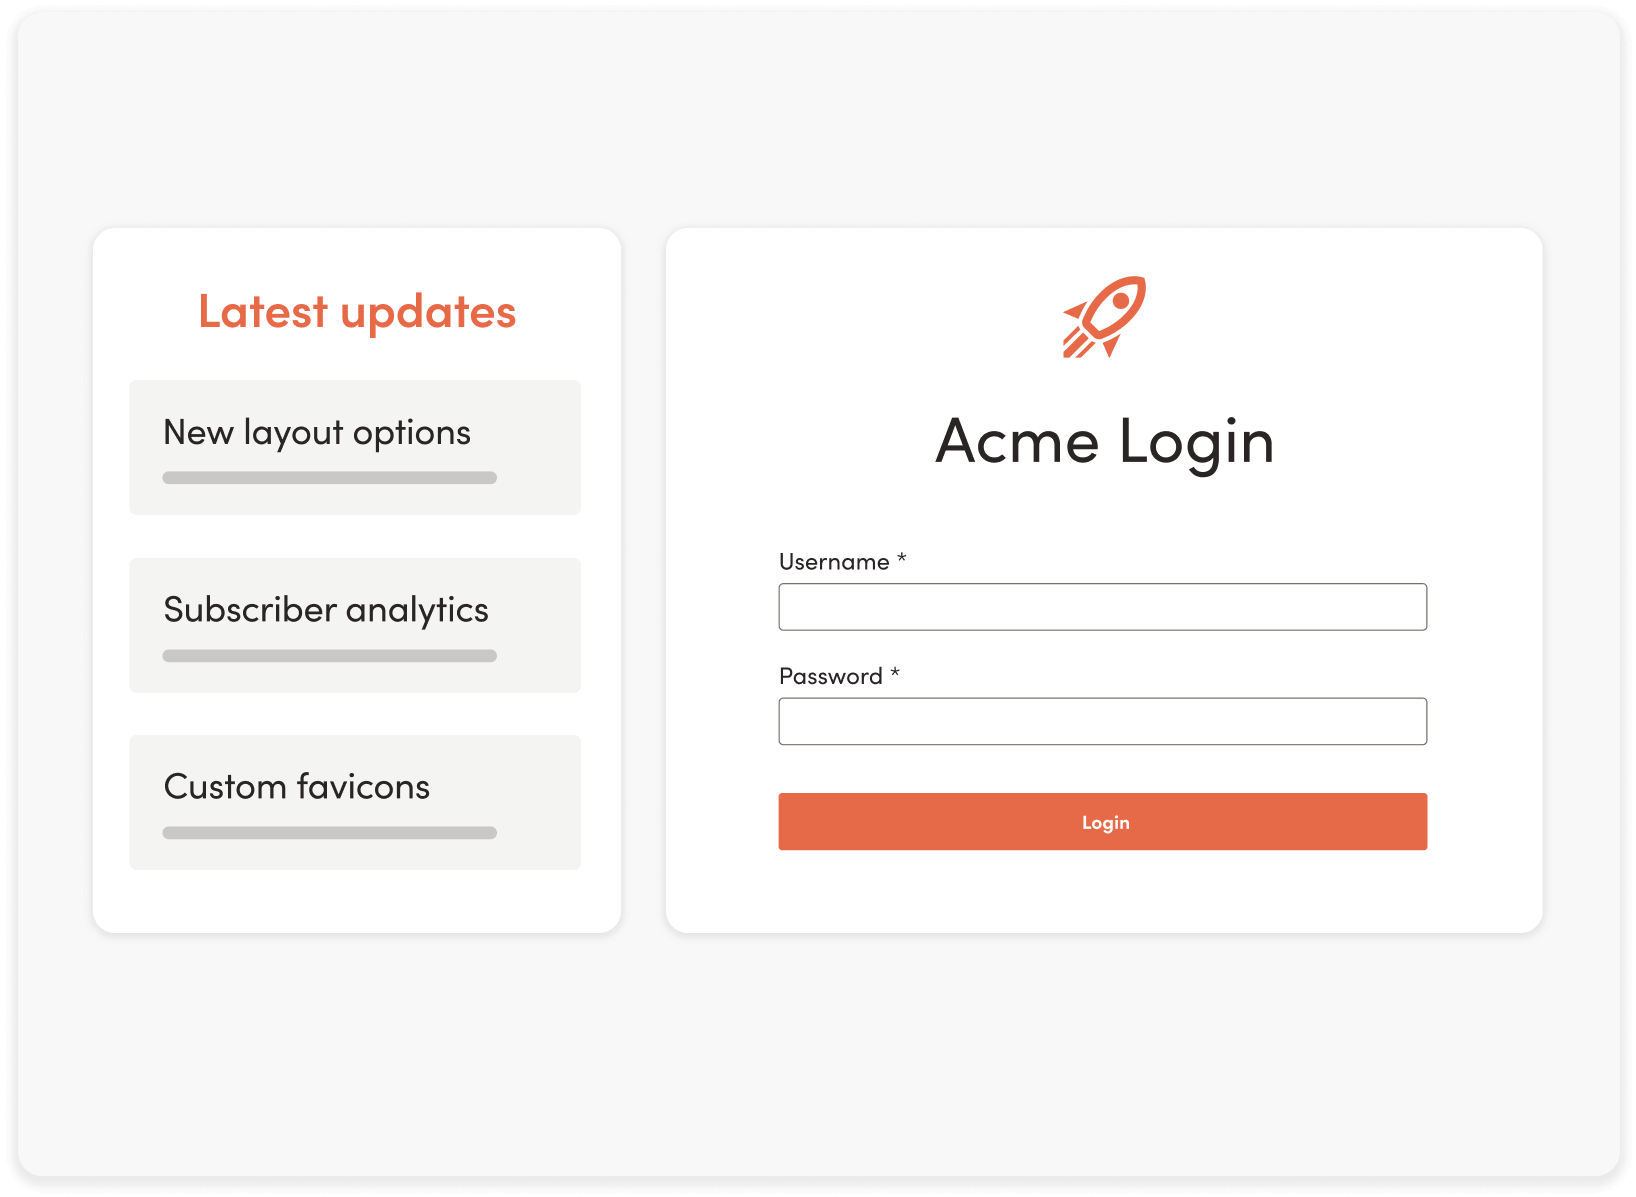 LaunchNotes notifications